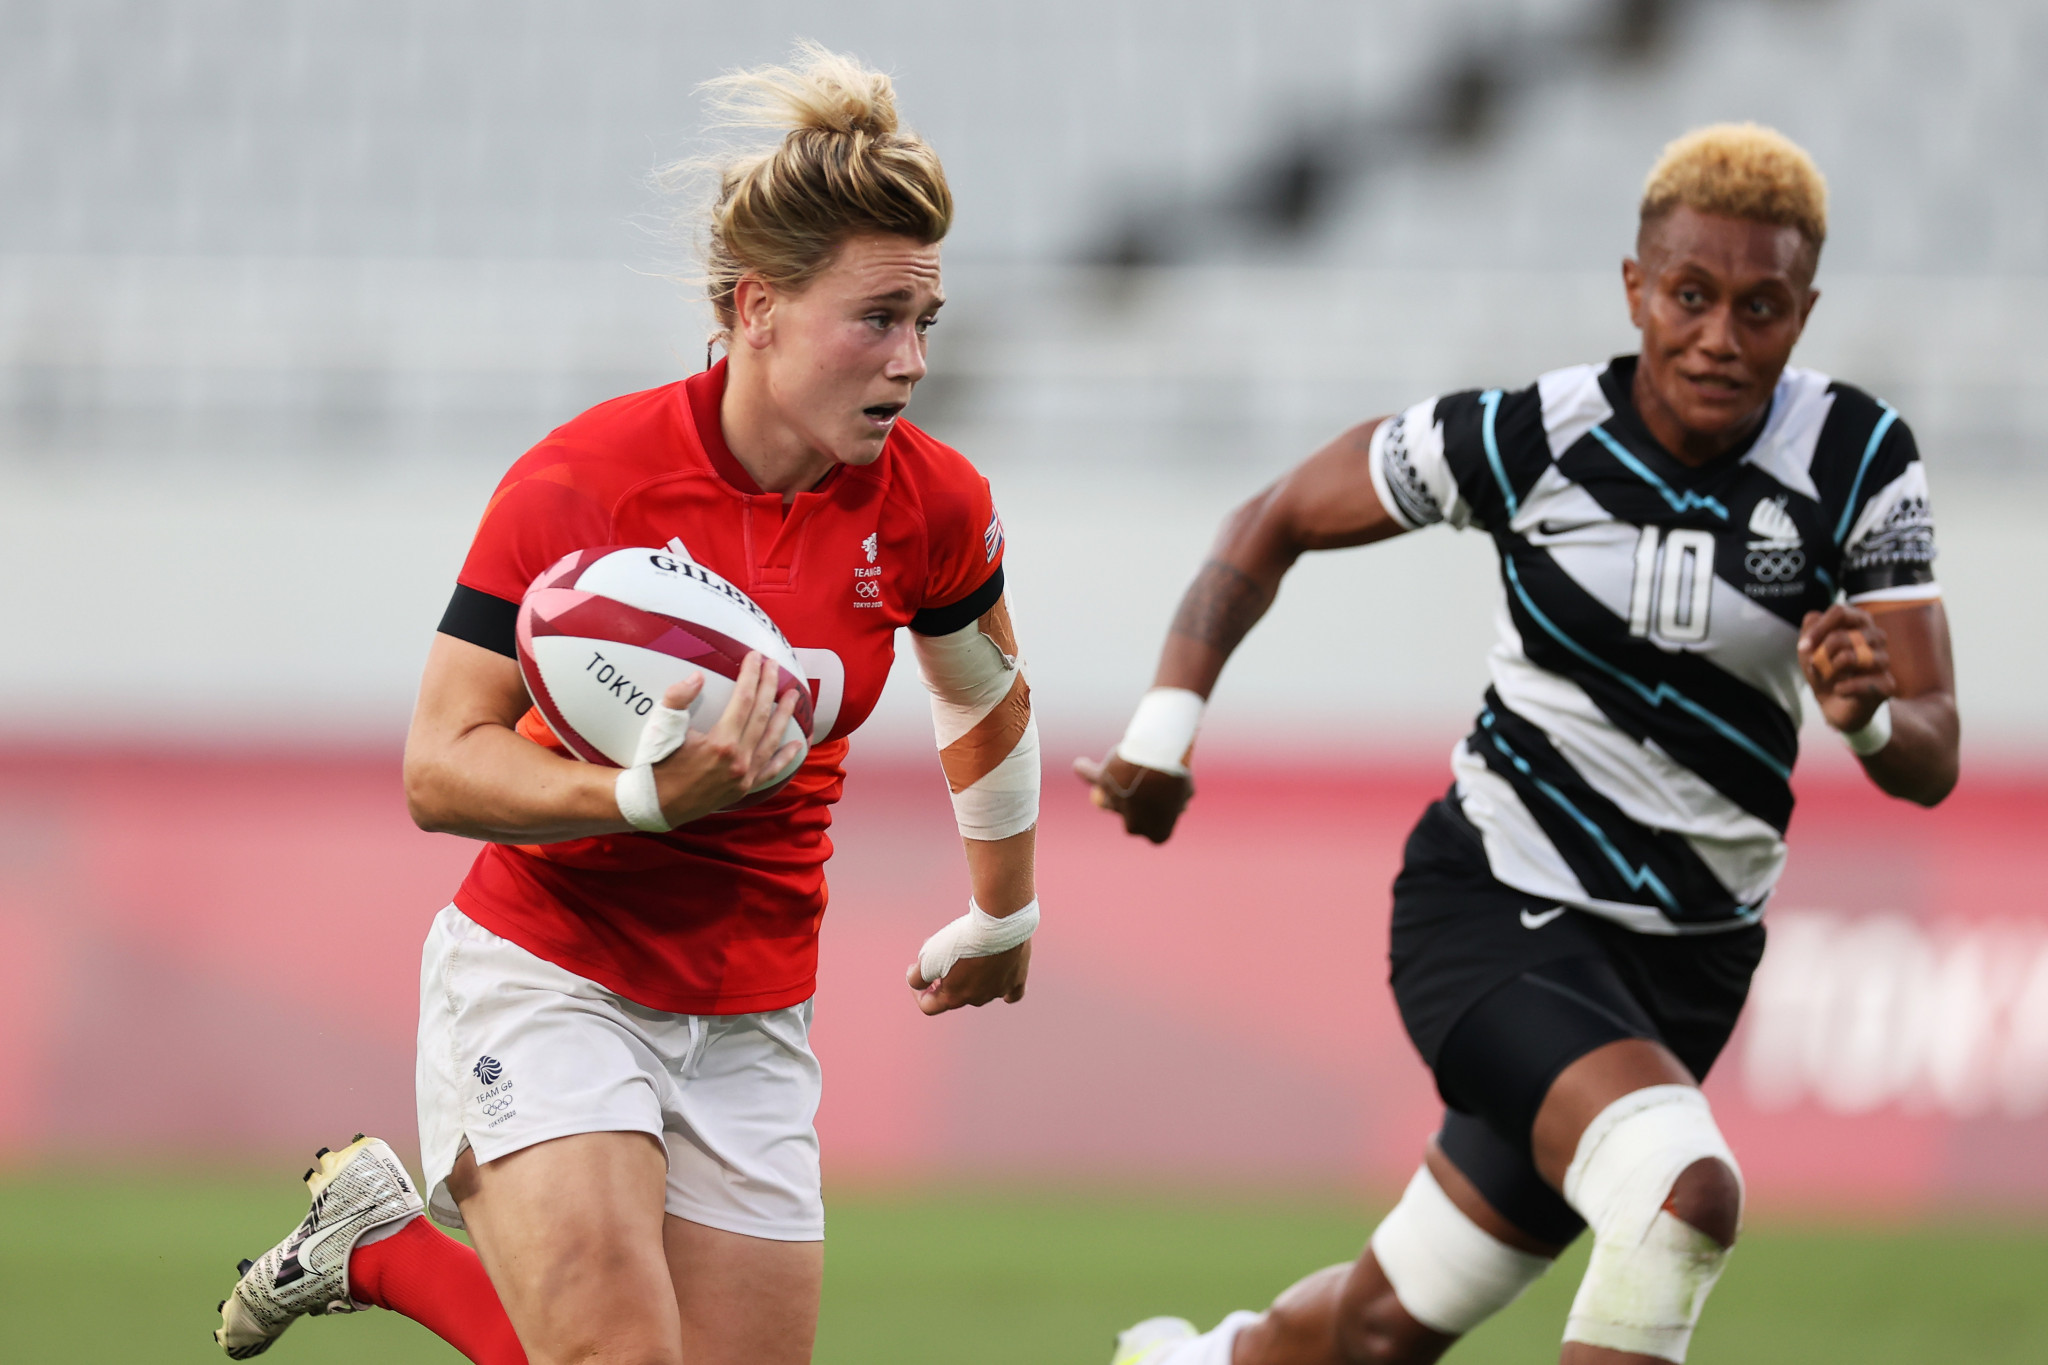 Megan Jones and Britain, who finished fourth at Tokyo 2020, will be looking to extend their lead in the Women's World Rugby Sevens Series in Edmonton ©Getty Images